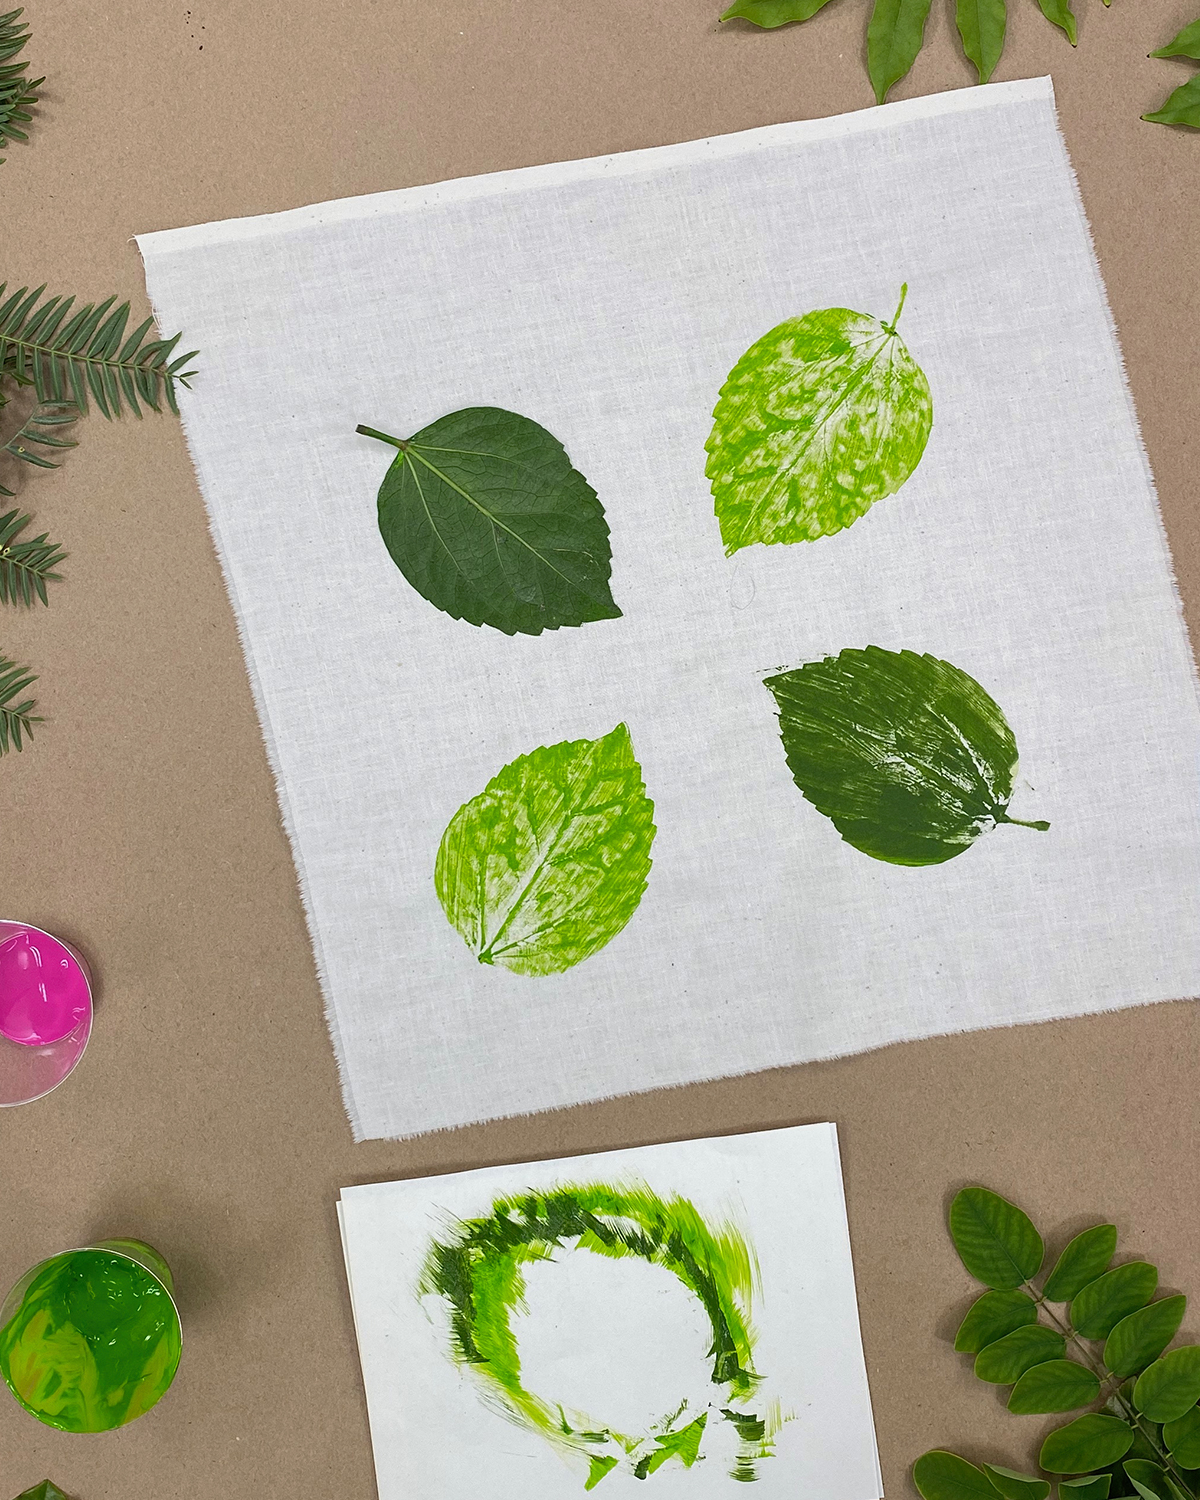 Craft at Home - Printing with Leaves